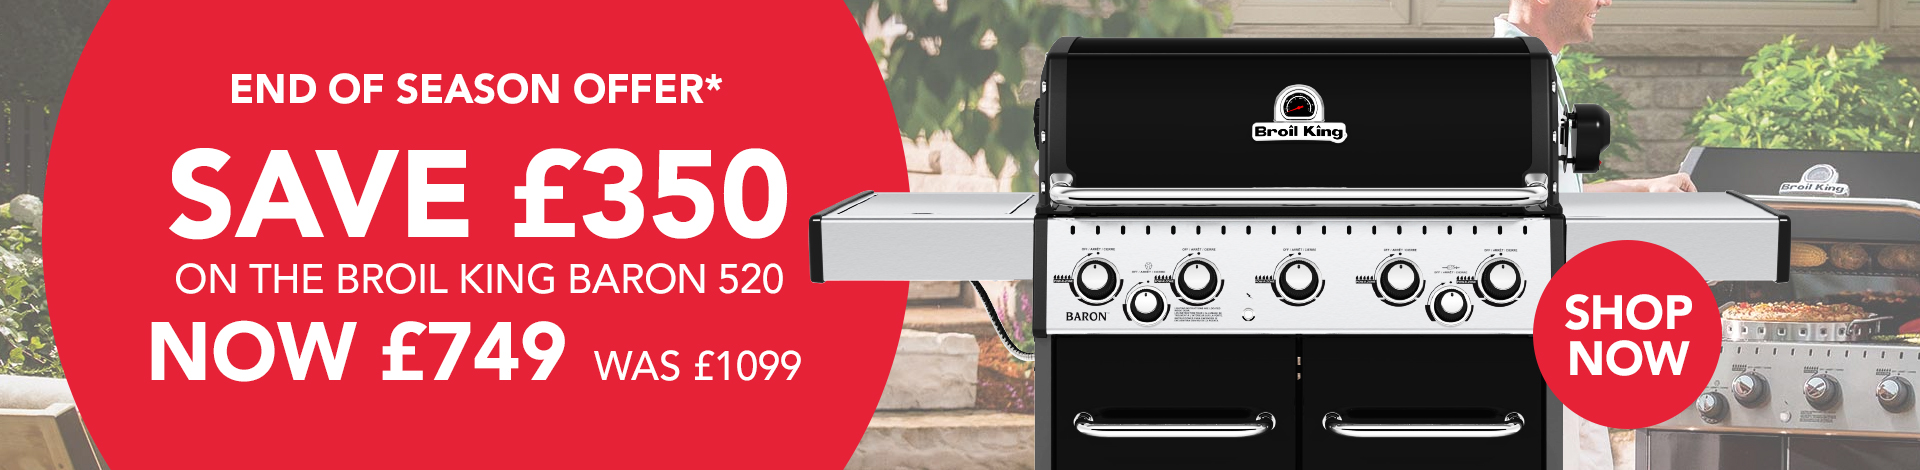 Broil King Baron 520 end of season offer